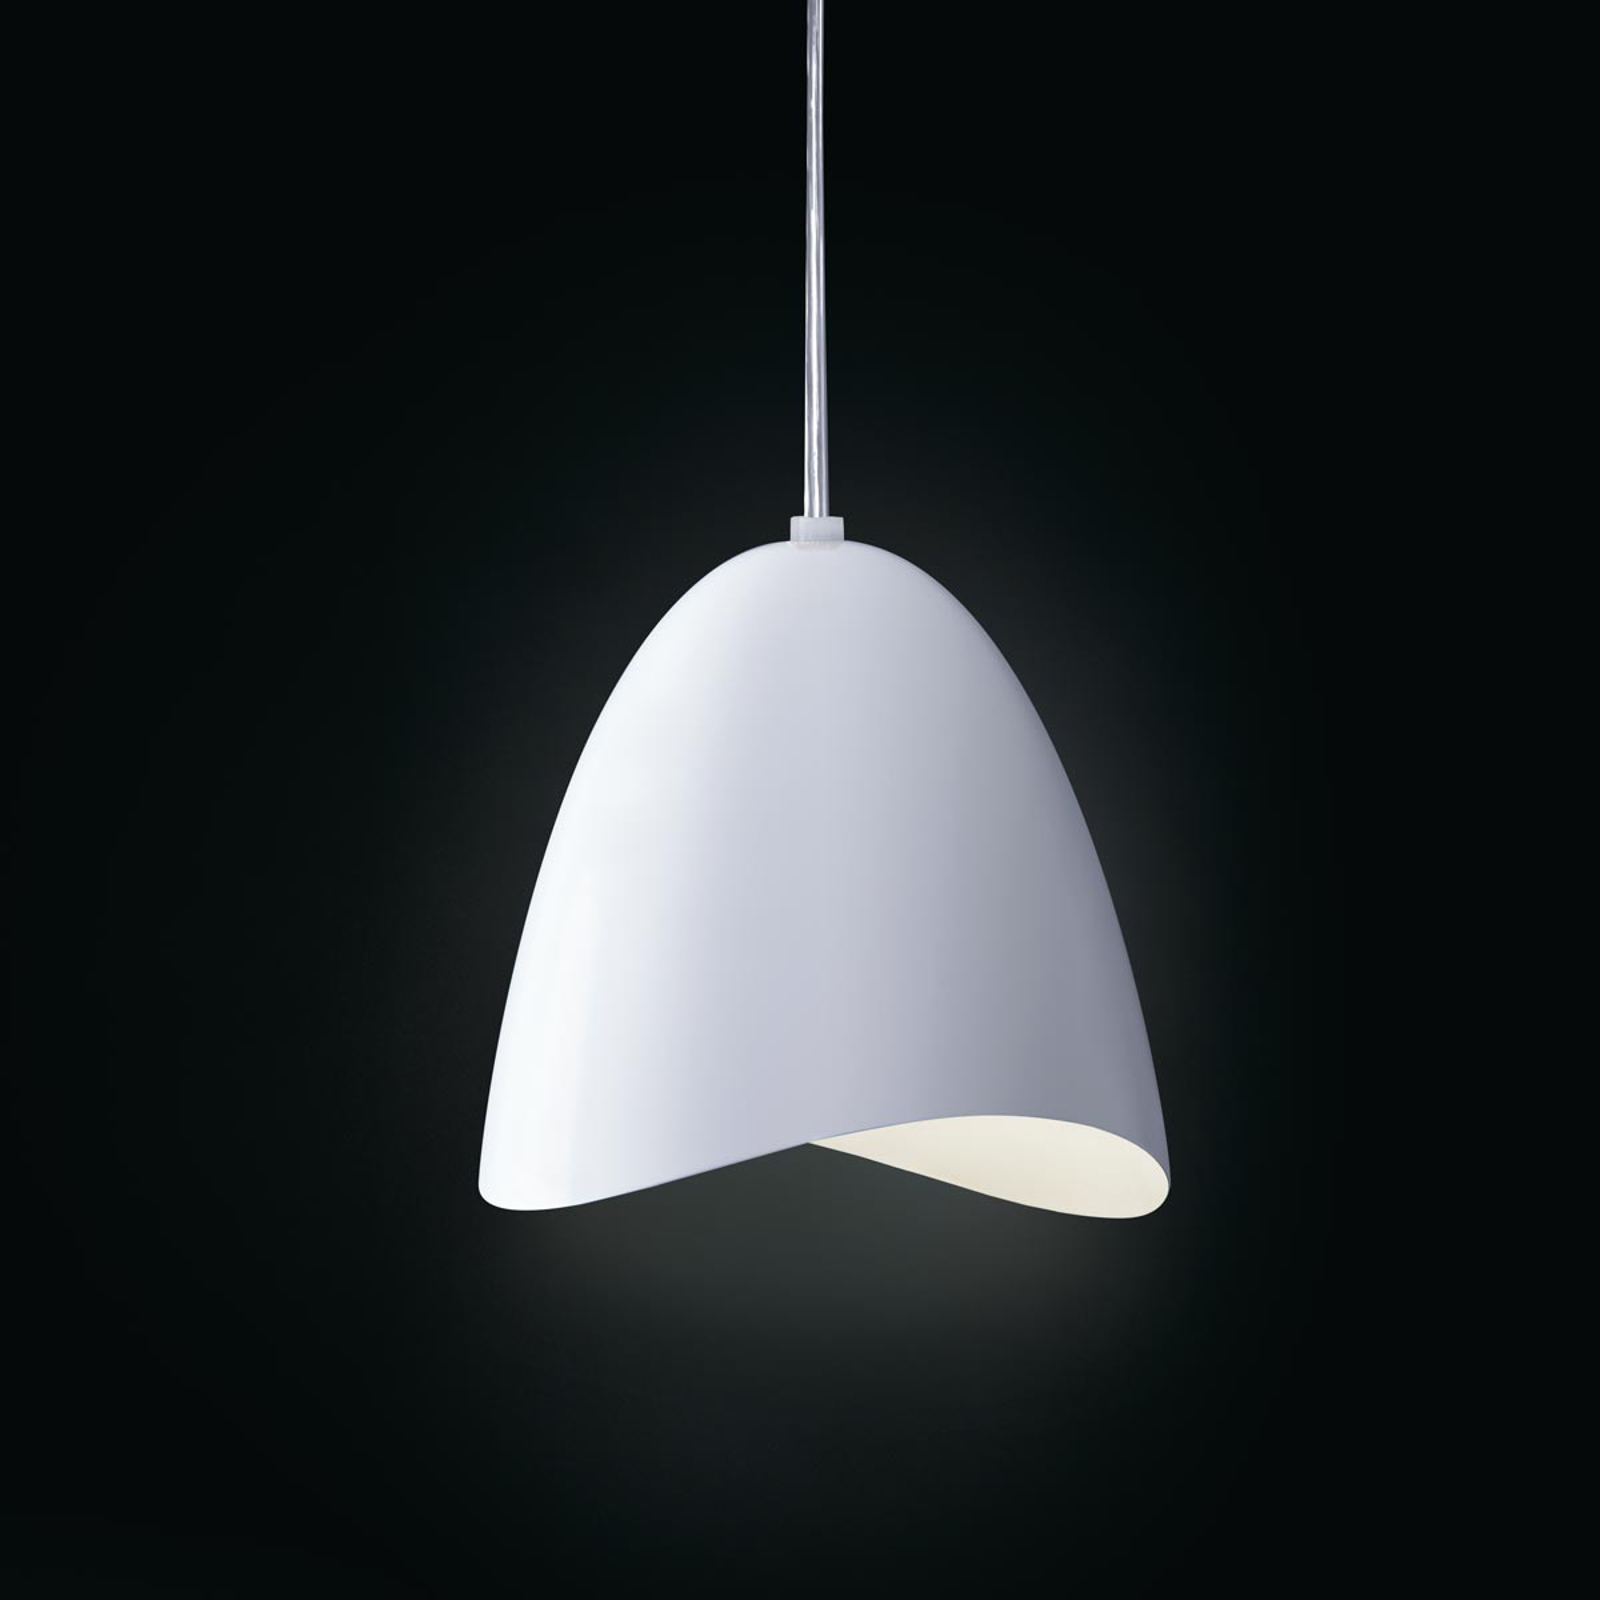 Suspension LED Mirage blanc brillant